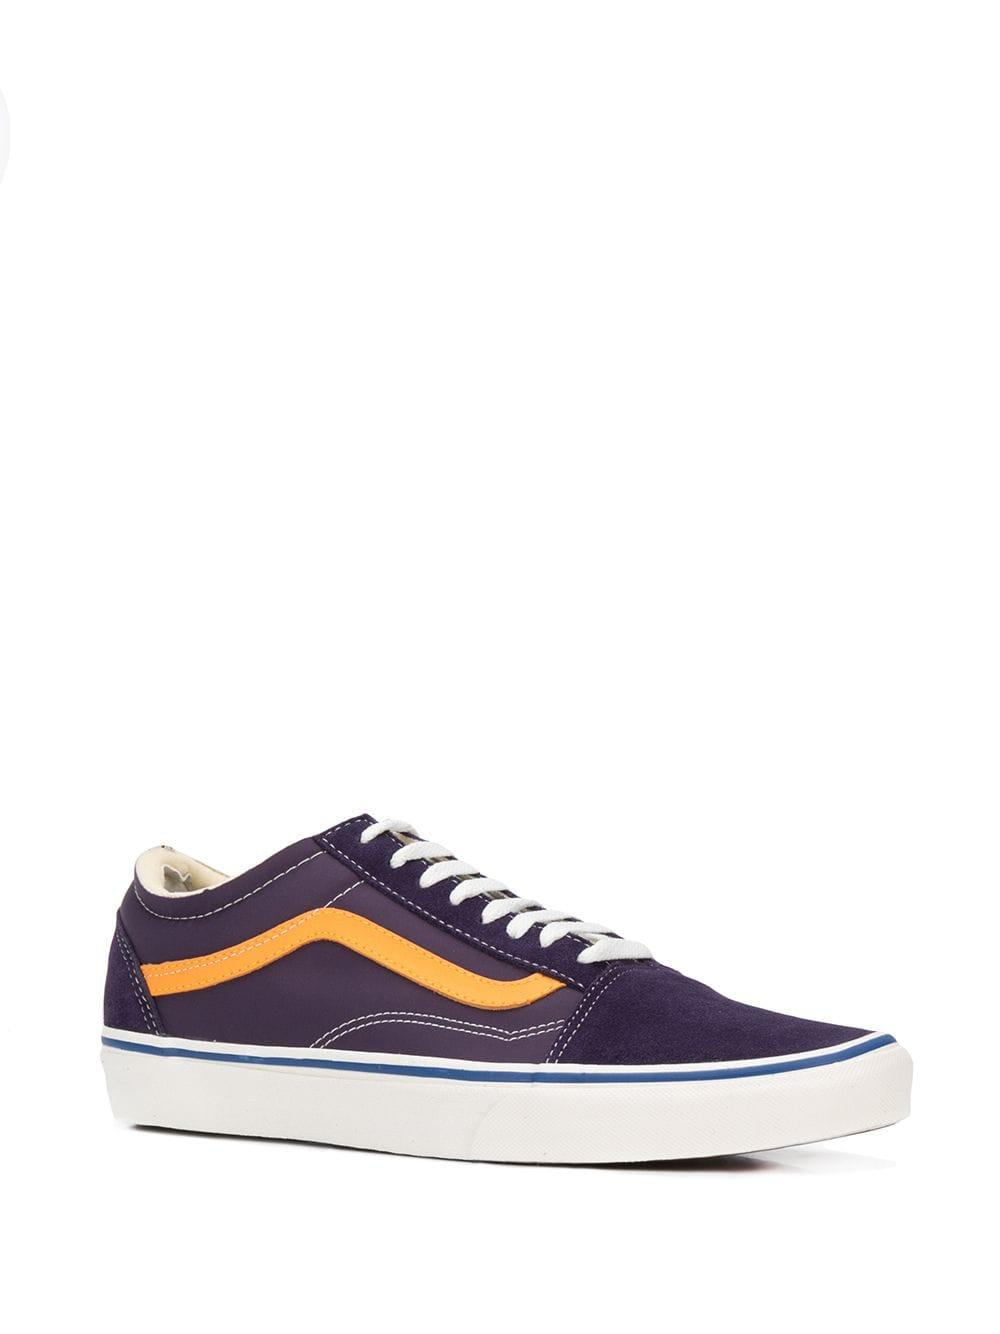 Vans - Purple Old Skool Sneakers for Men - Lyst. View fullscreen e9d4ed6ce